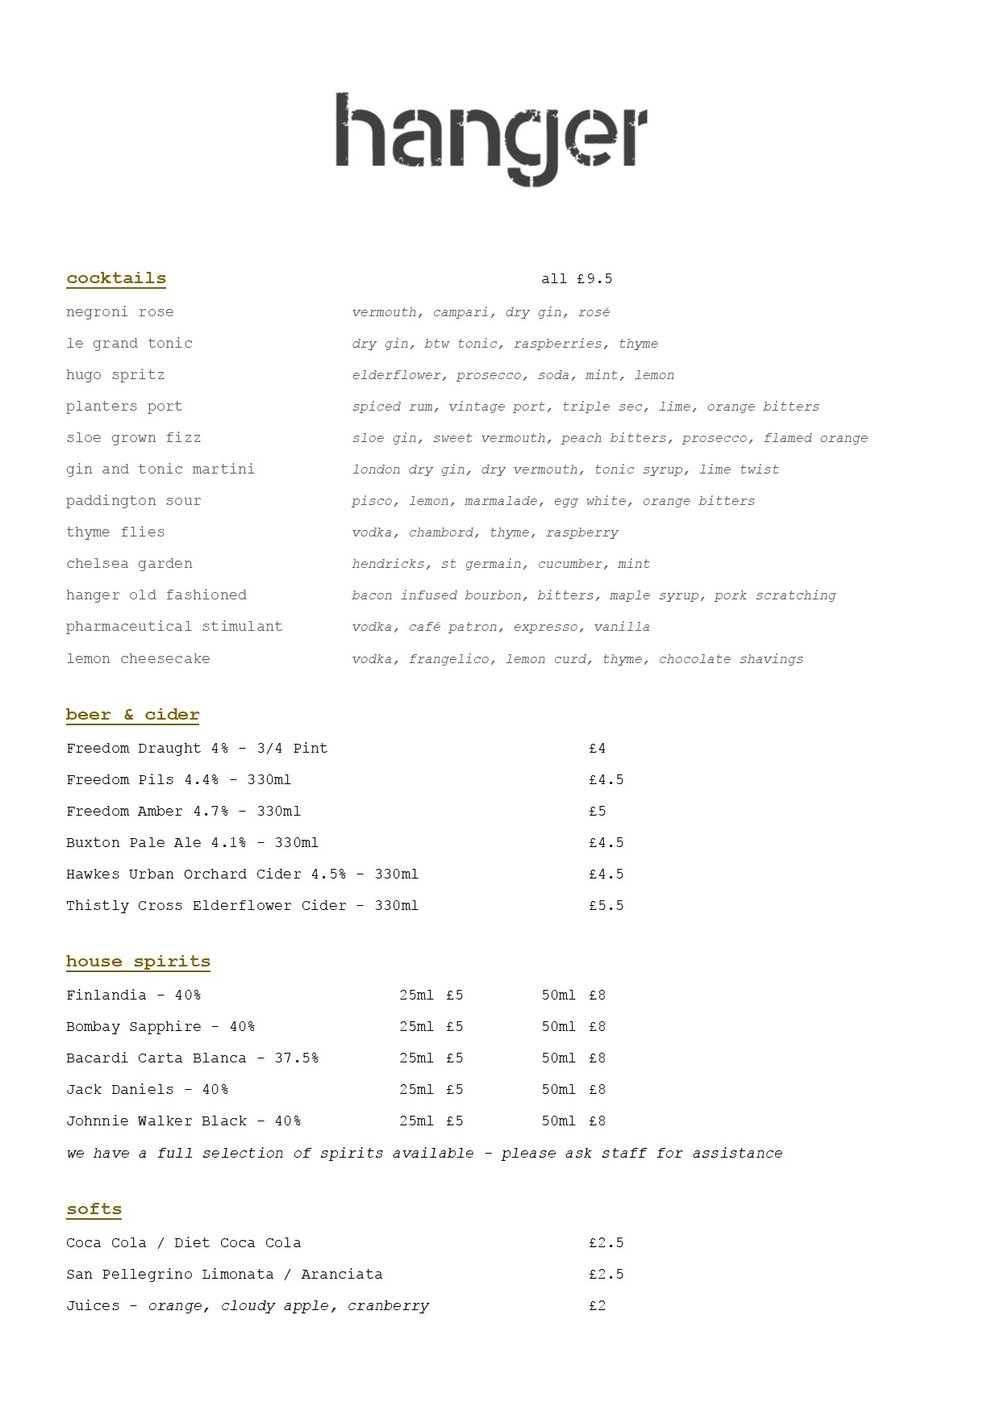 Full Drinks Menu 2.jpg